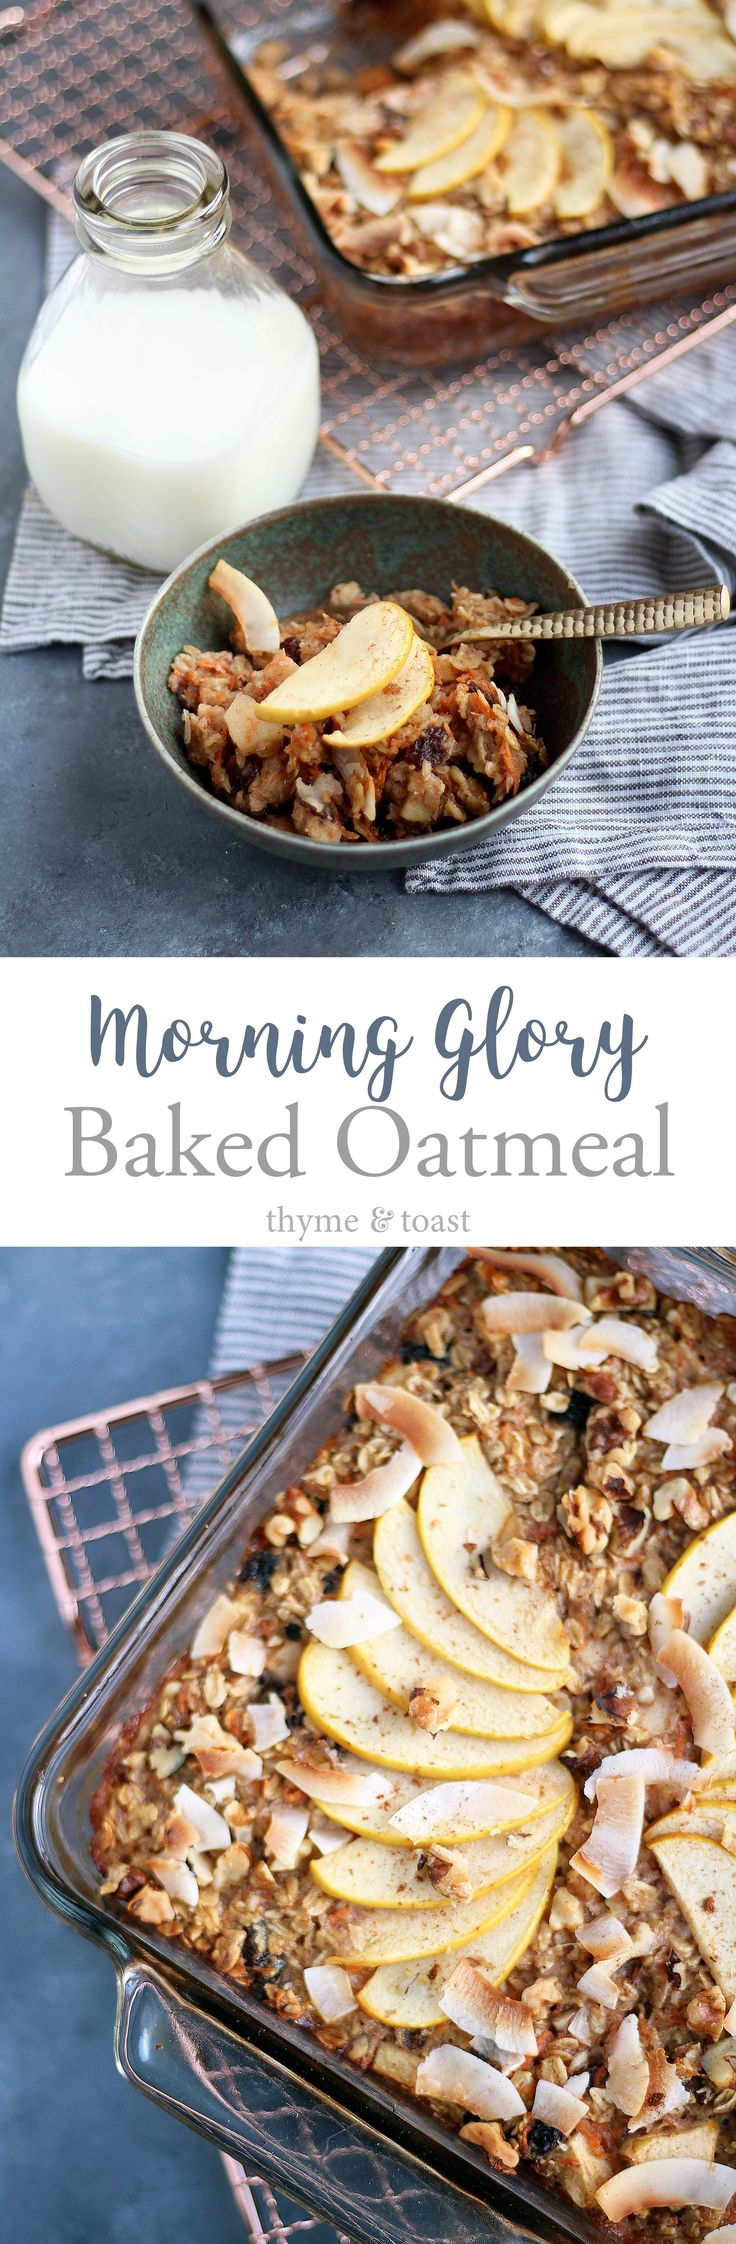 Baked oatmeal inspired by morning glory muffins. Loaded with carrots, coconut, raisins, walnuts, and apples. Perfect for meal prep!